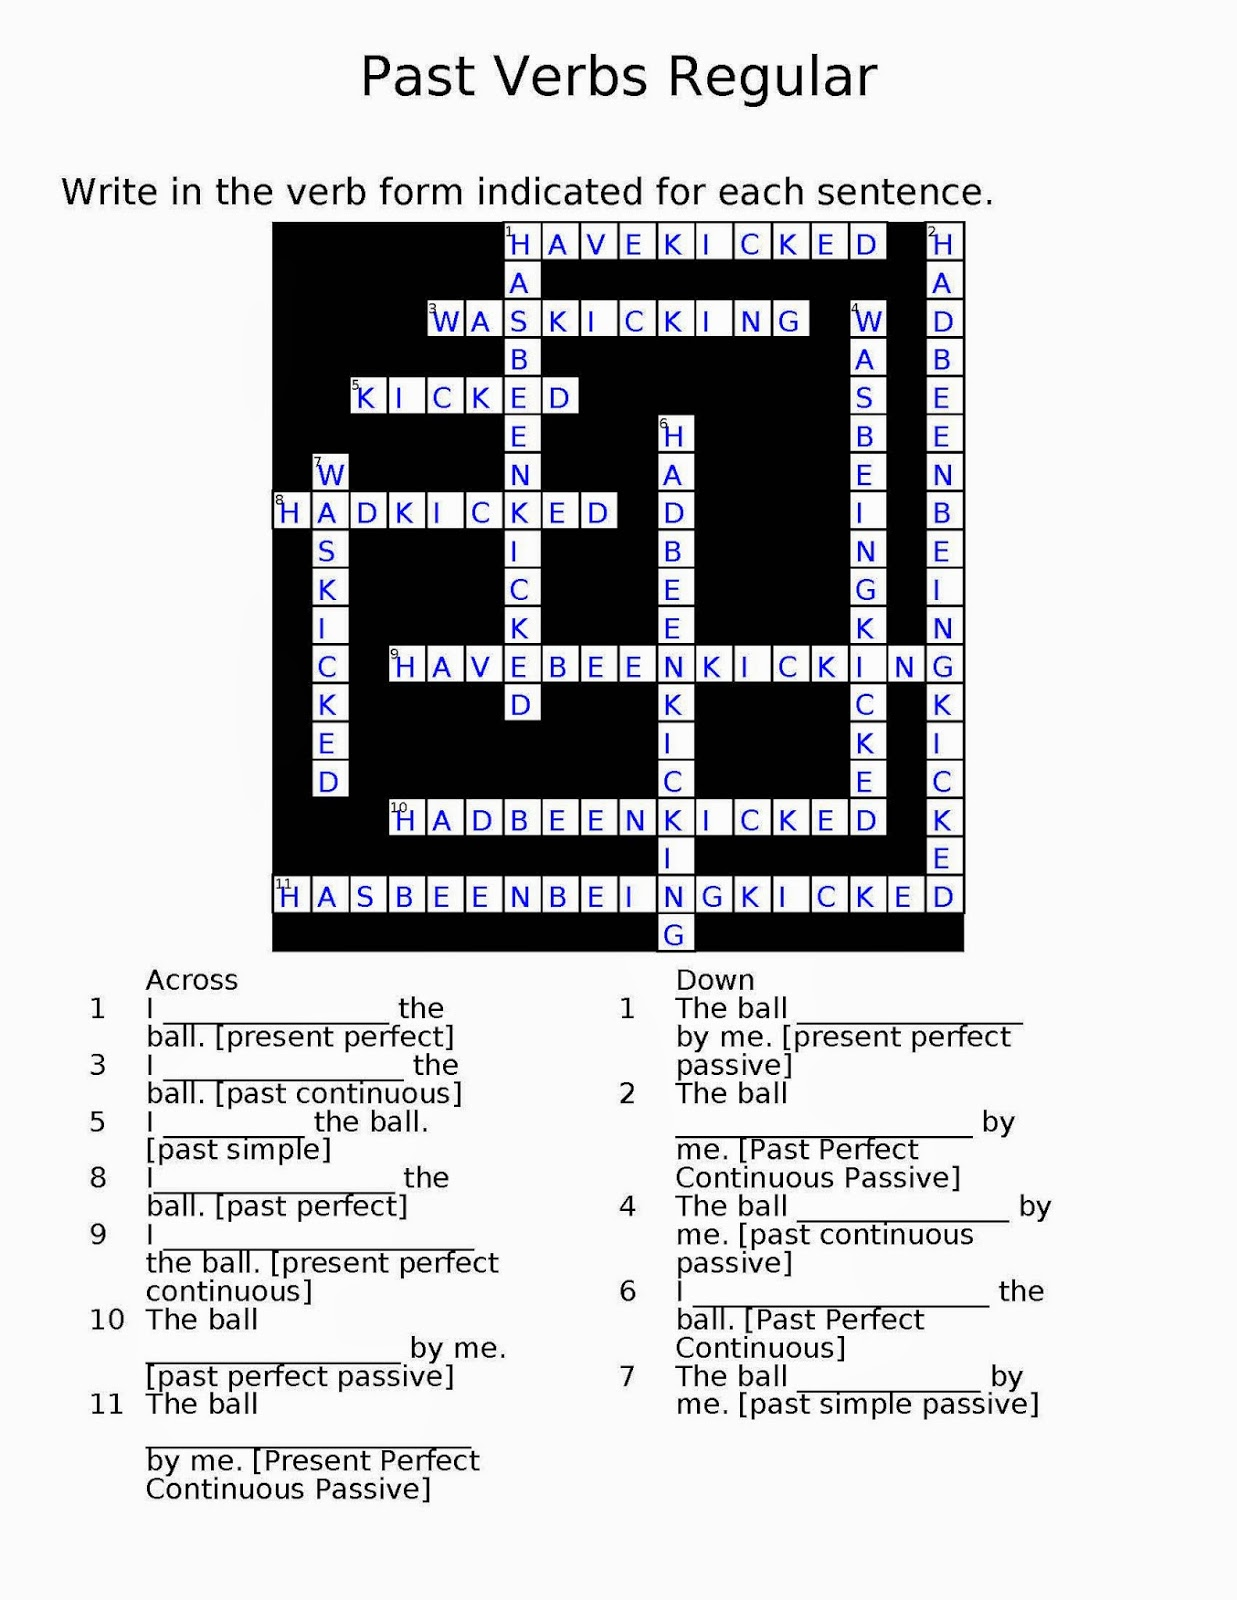 Random Book And Movie Reviews Crossword Puzzles For